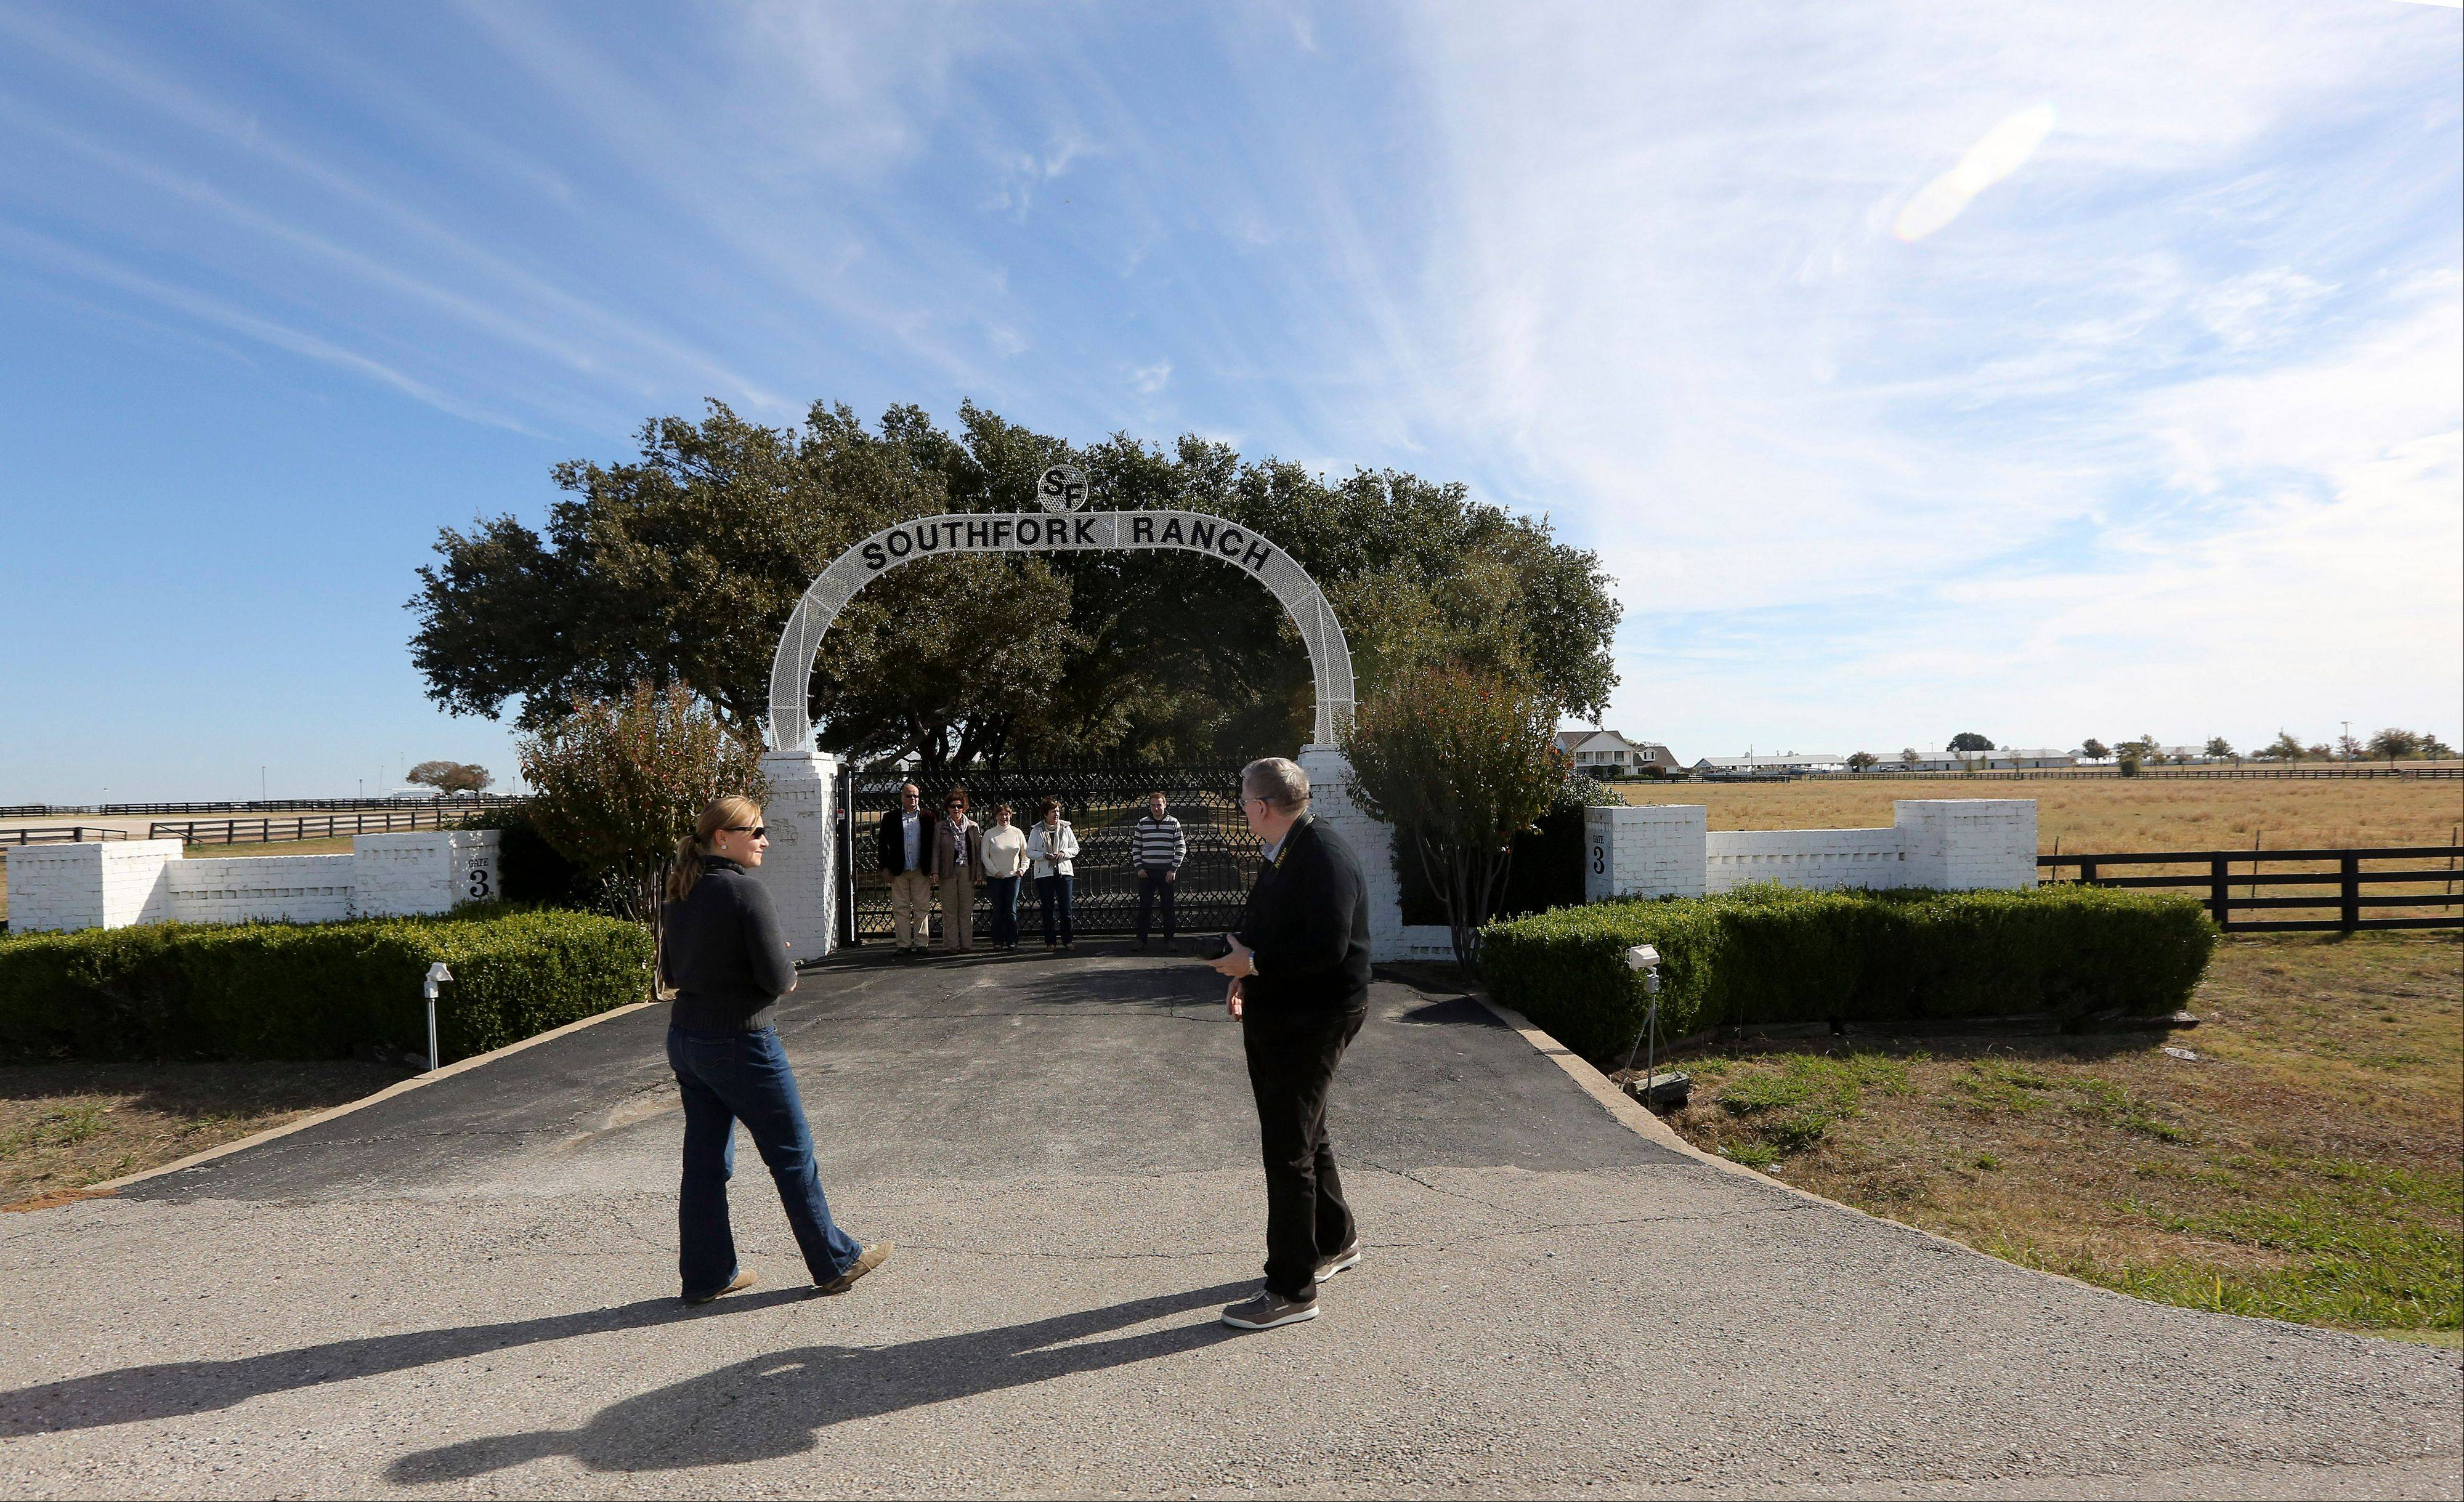 Tourists line up for a photo at the front gate of Southfork Ranch in Parker, Texas.